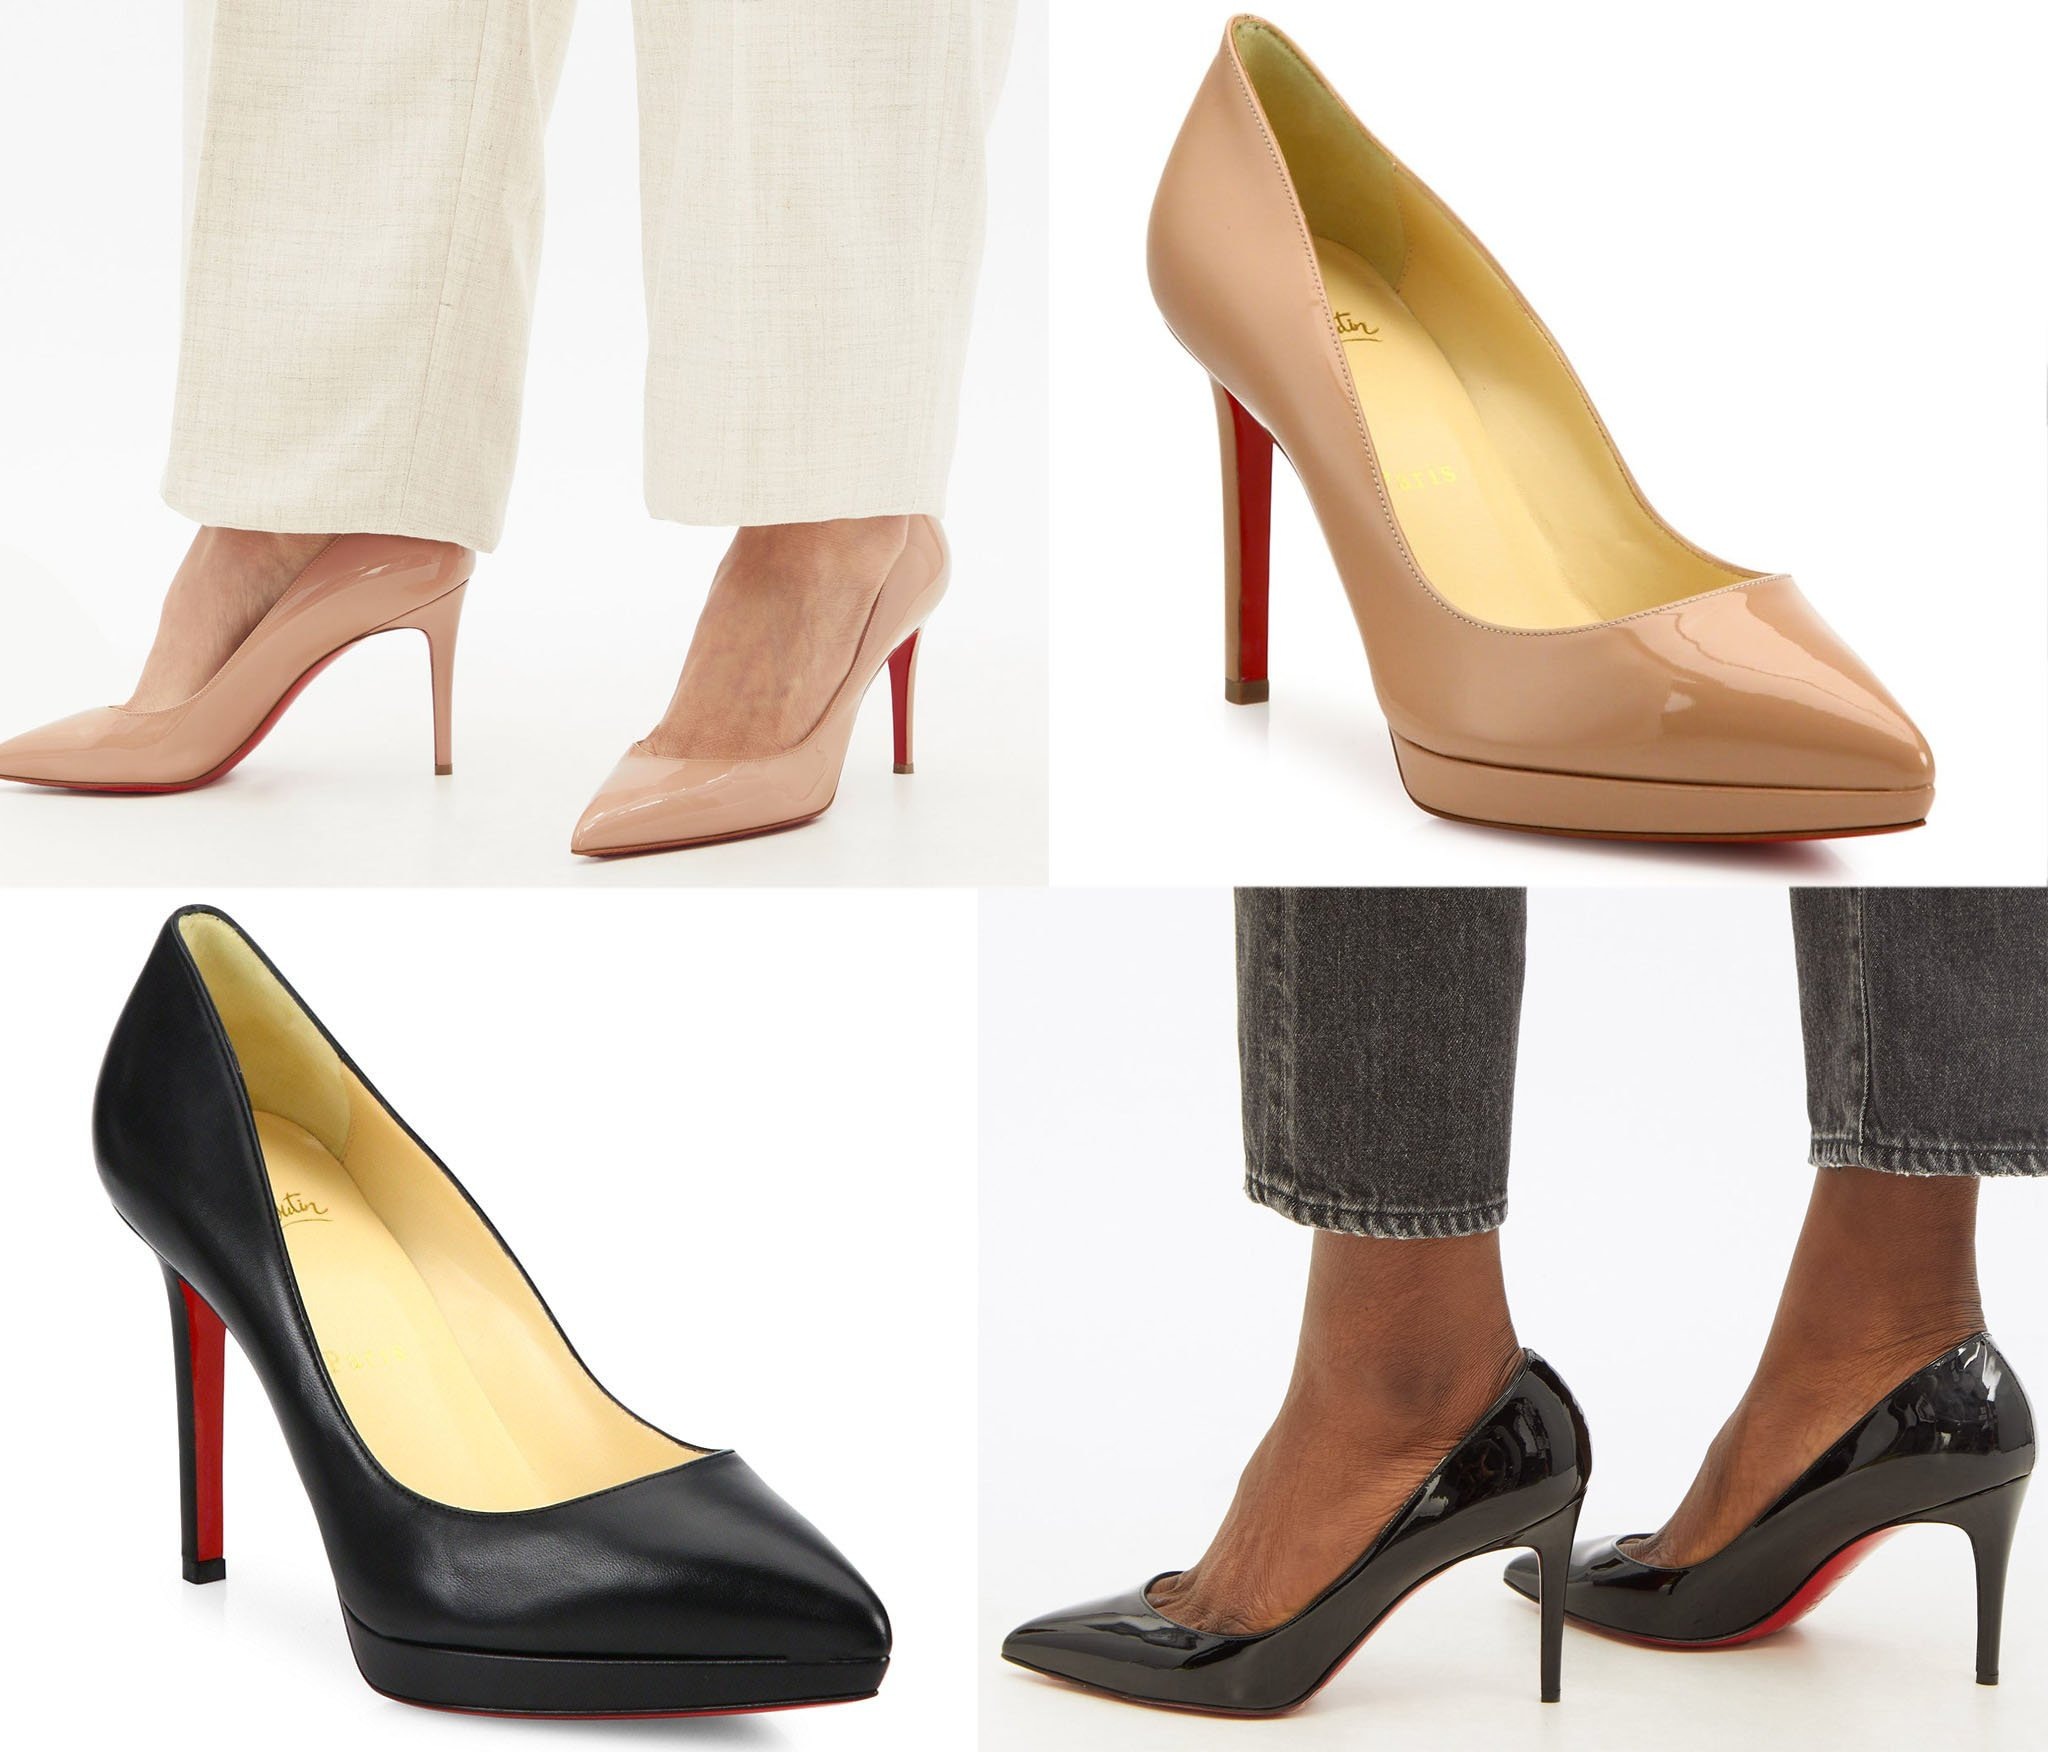 The Pigalle has the shortest toe box among Christian Louboutin pumps